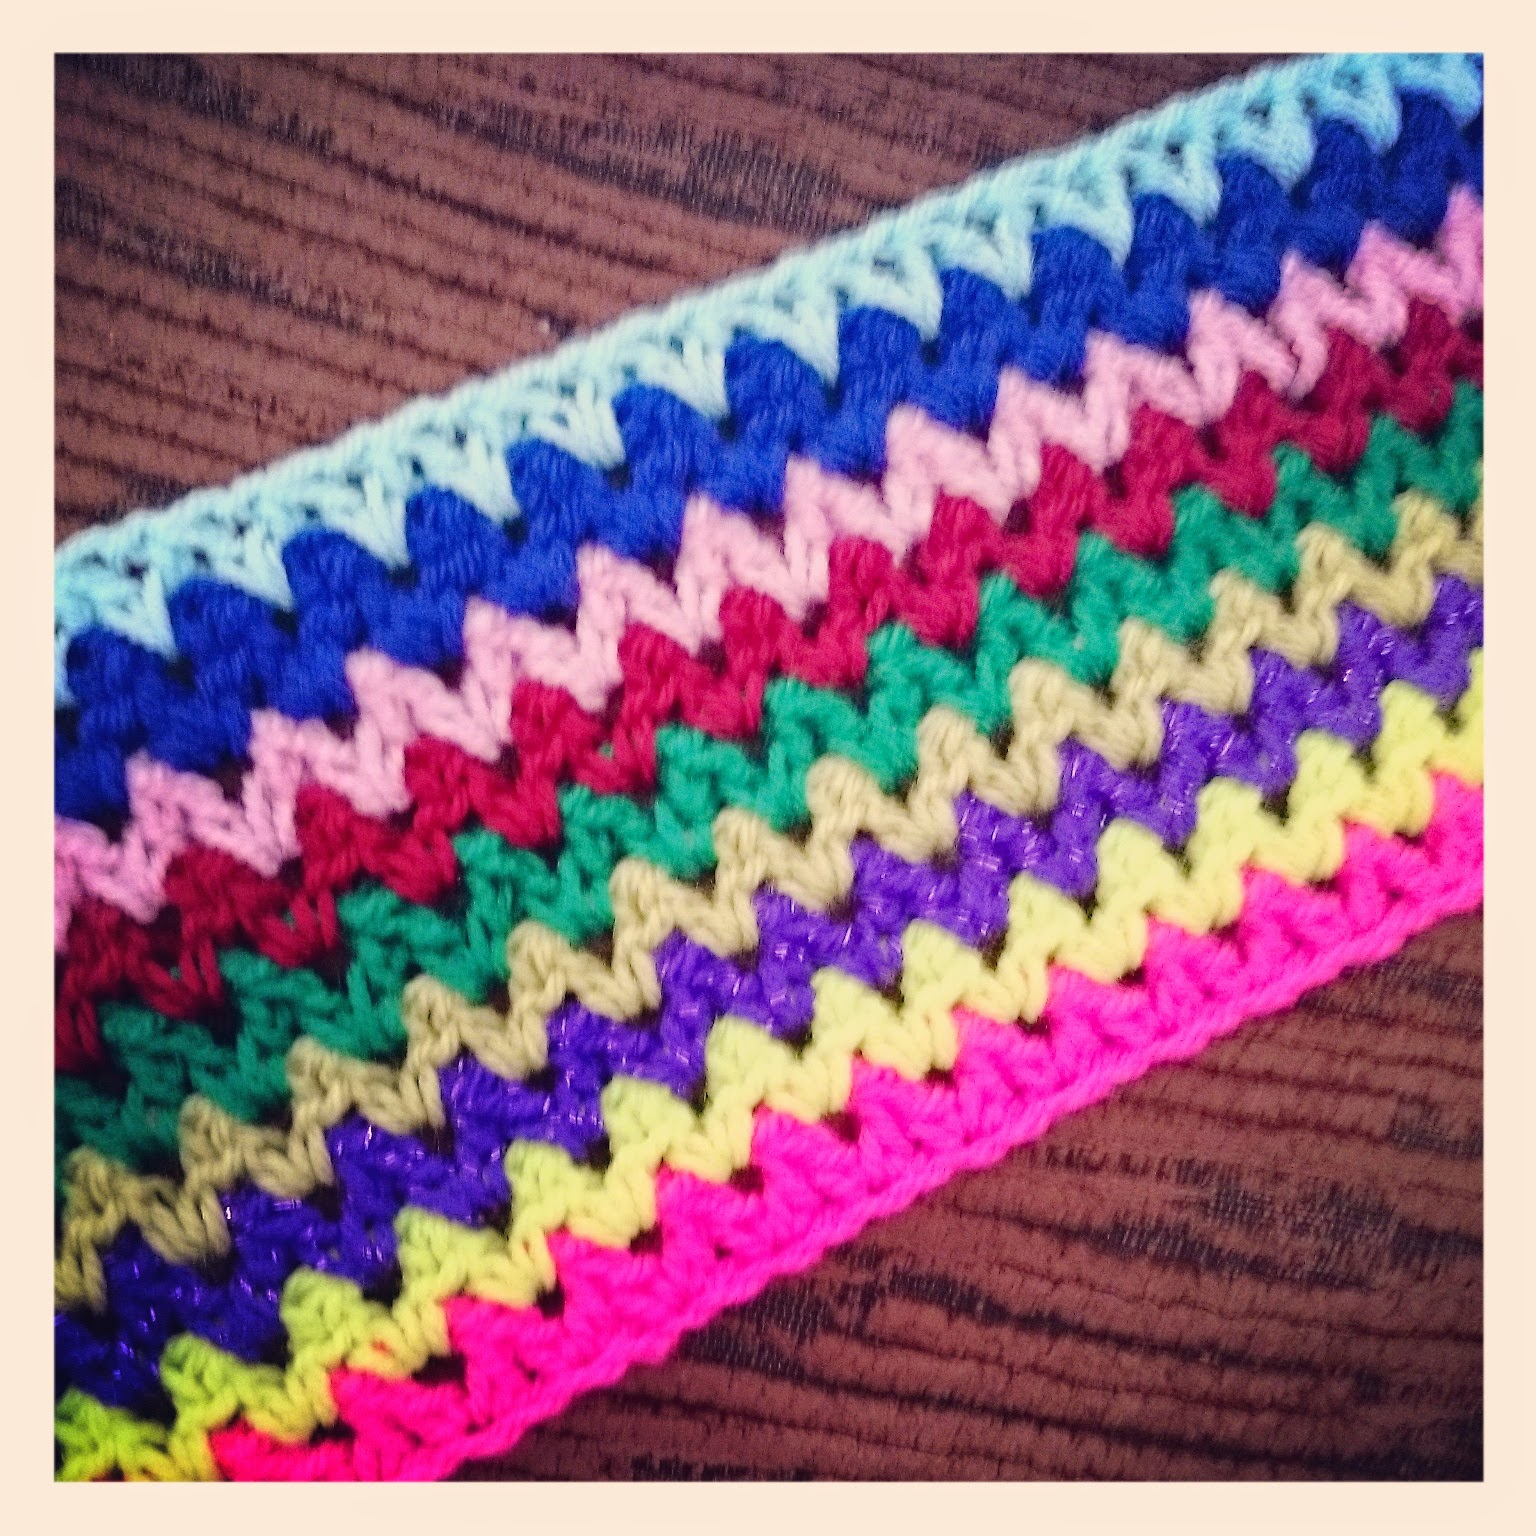 Crochet Stitches V Stitch : ... Sparkles Blog: Crochet V Stitch Travel Blanket - My latest crochet WIP